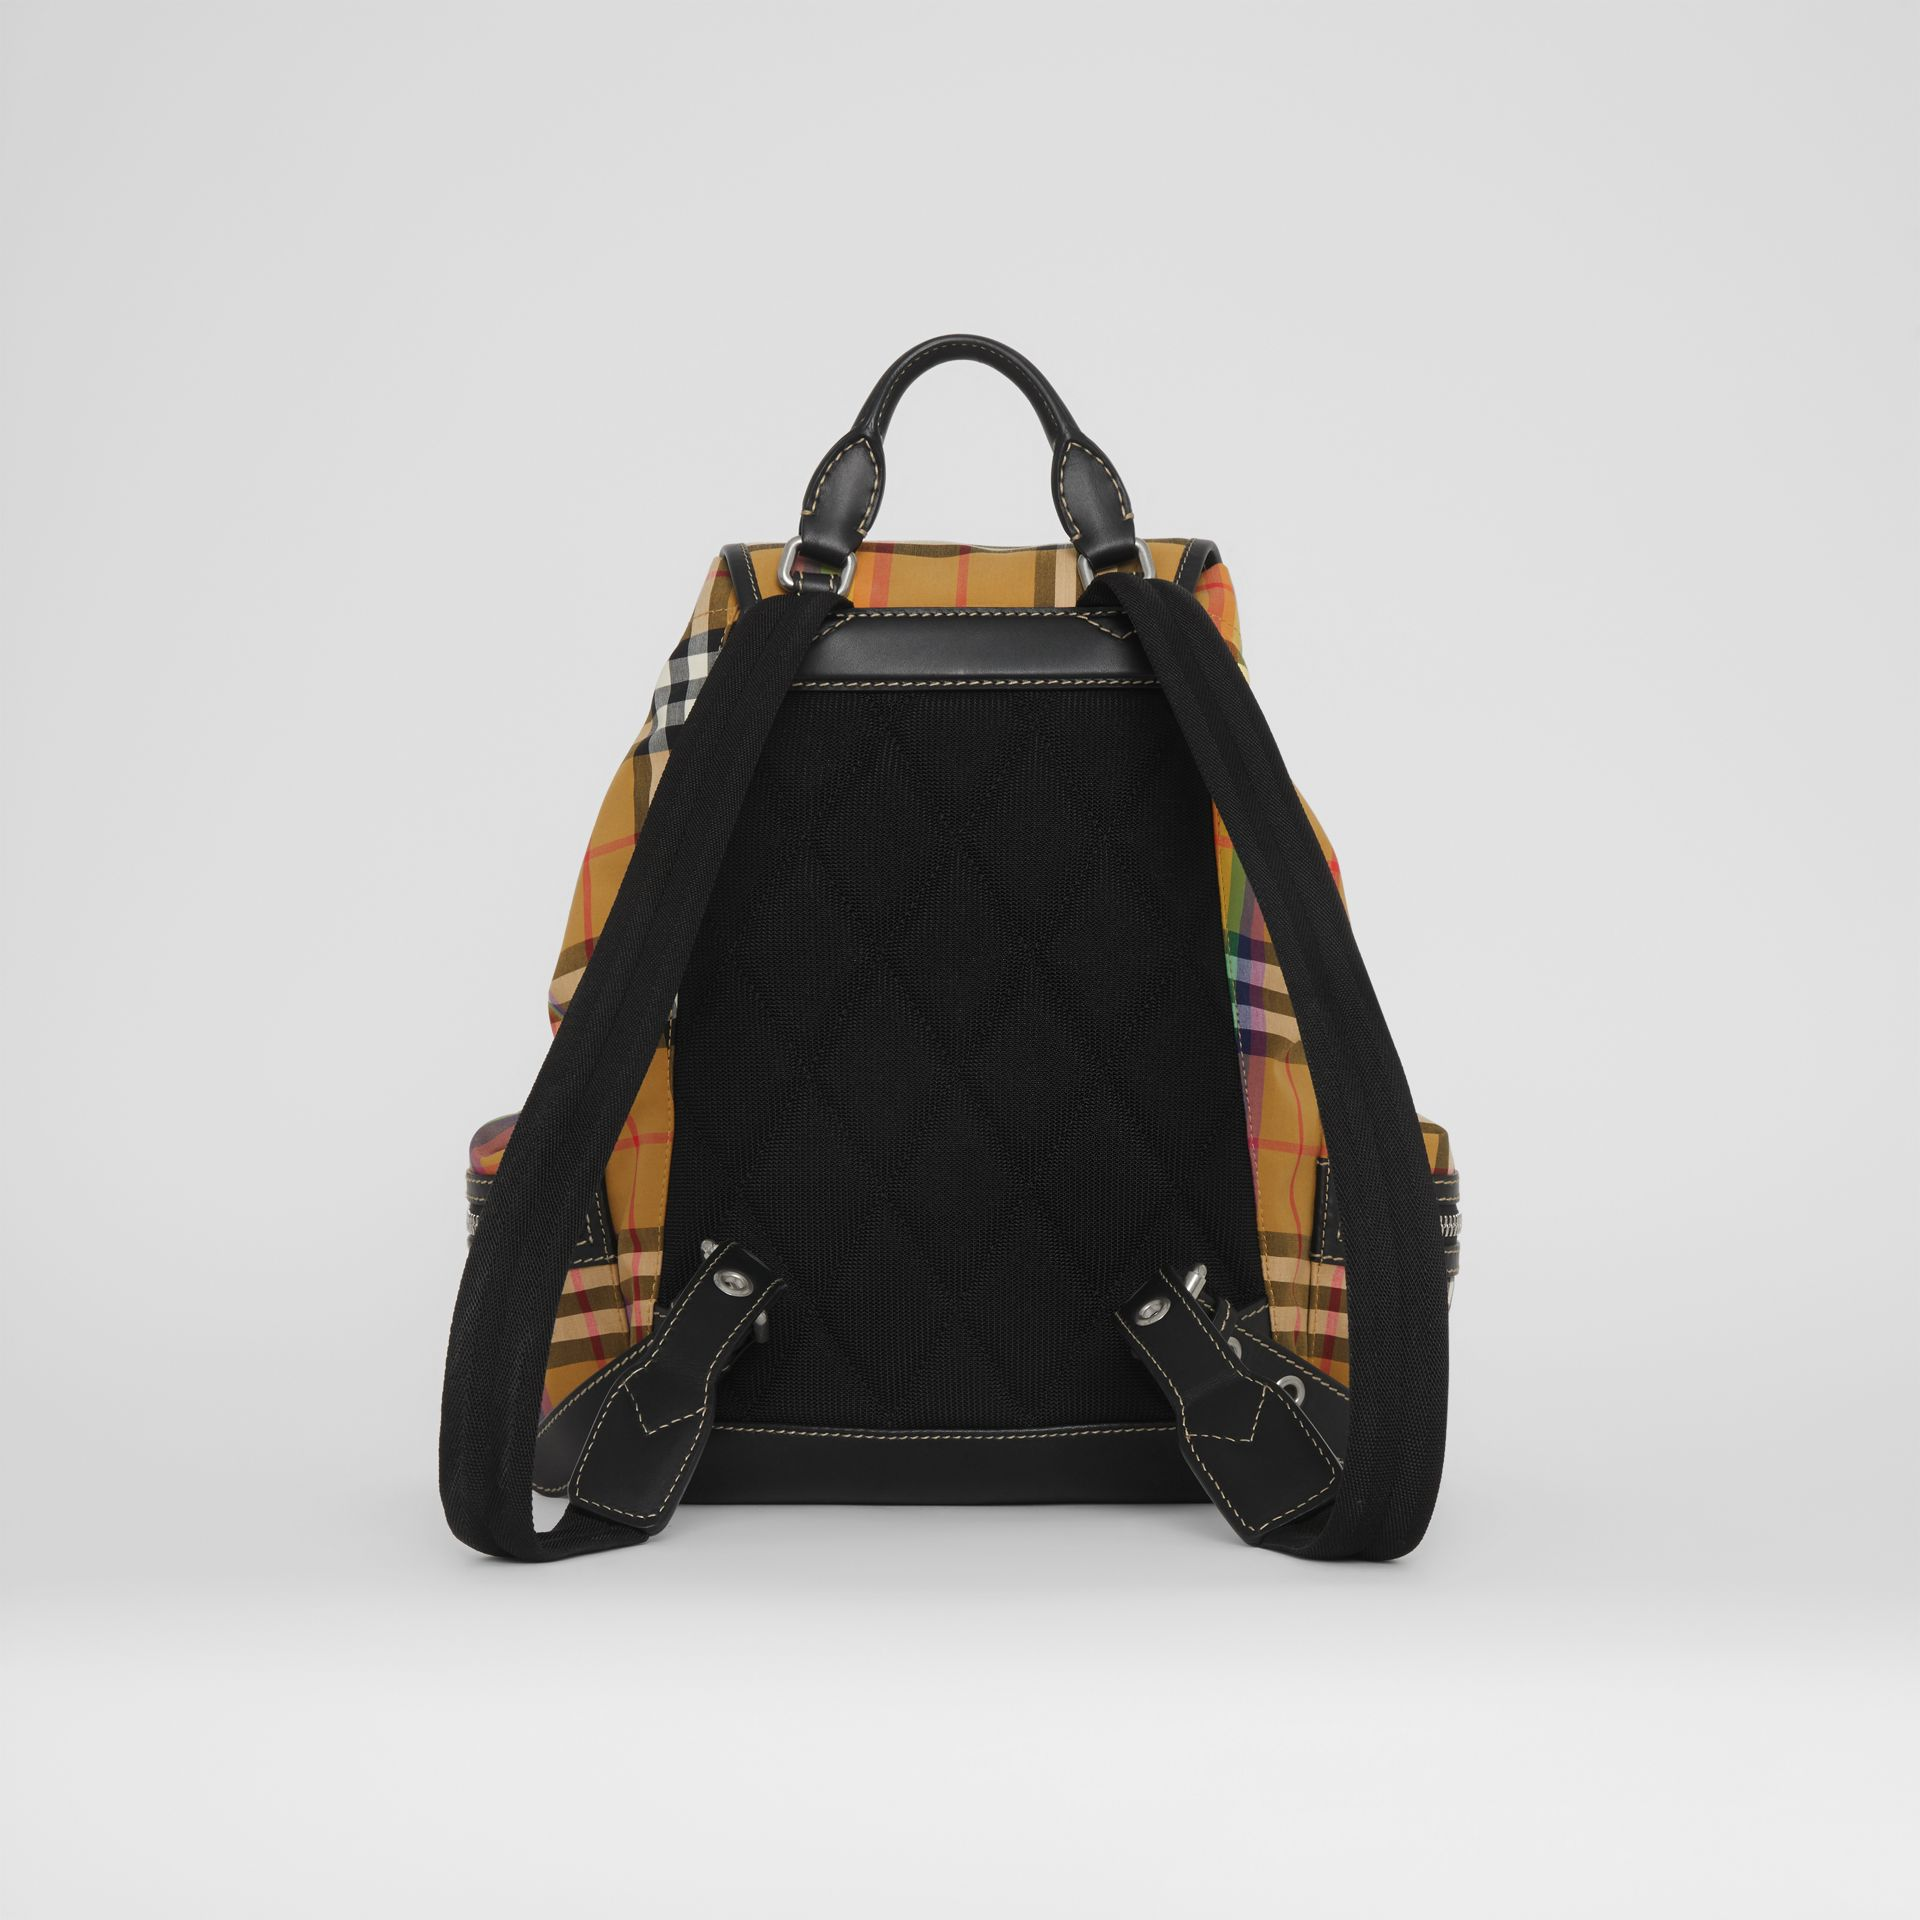 Sac The Rucksack moyen à motif Rainbow Vintage check (Jaune Antique) - Femme | Burberry - photo de la galerie 7